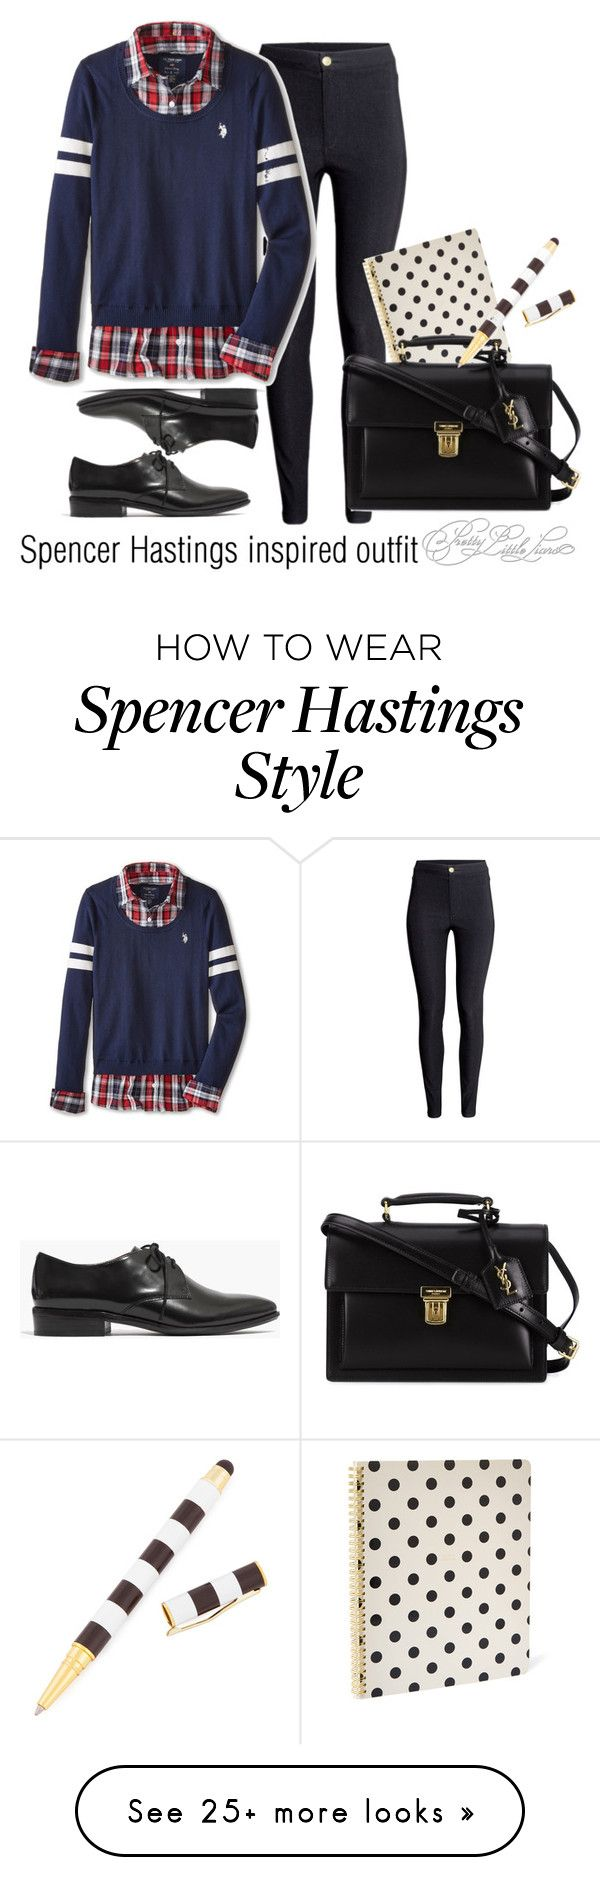 """Spencer Hastings inspired outfit/PLL"" by tvdsarahmichele on Polyvore featuring H&M, U.S. Polo Assn., Madewell, Kate Spade, Yves Saint Laurent and Henri Bendel"